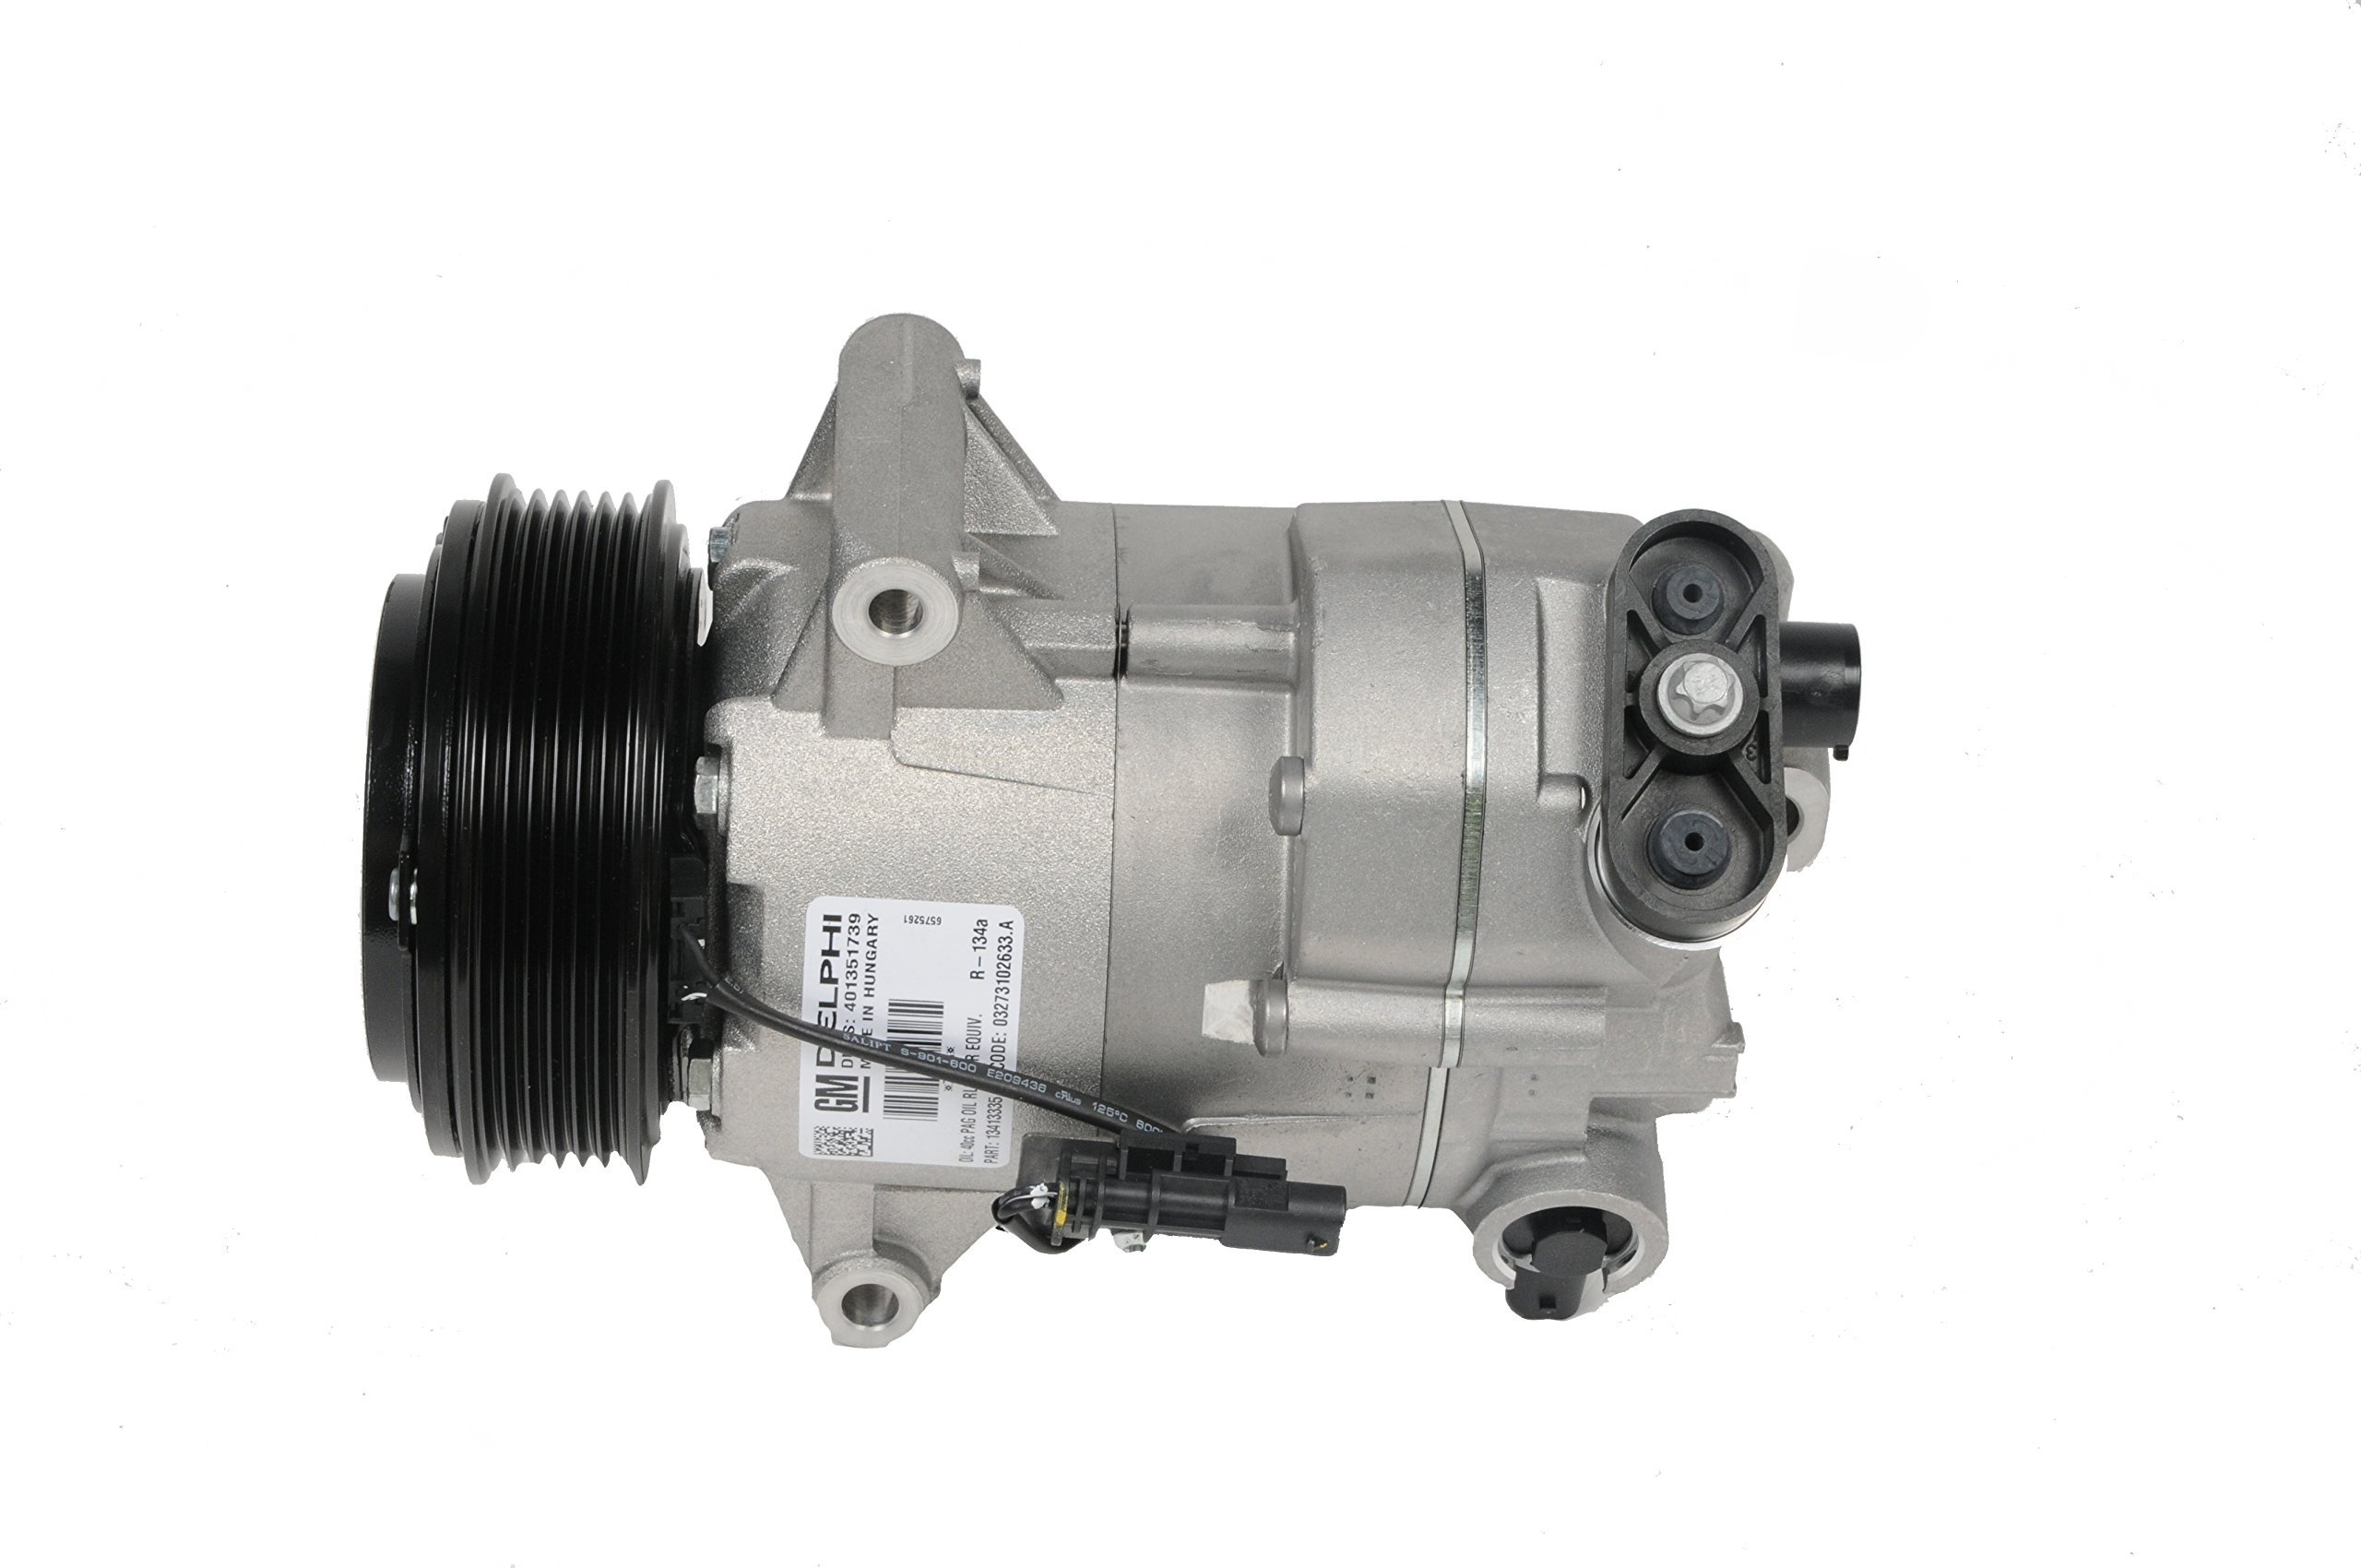 GM Genuine Parts 15-22291 Air Conditioning Compressor and Clutch Assembly